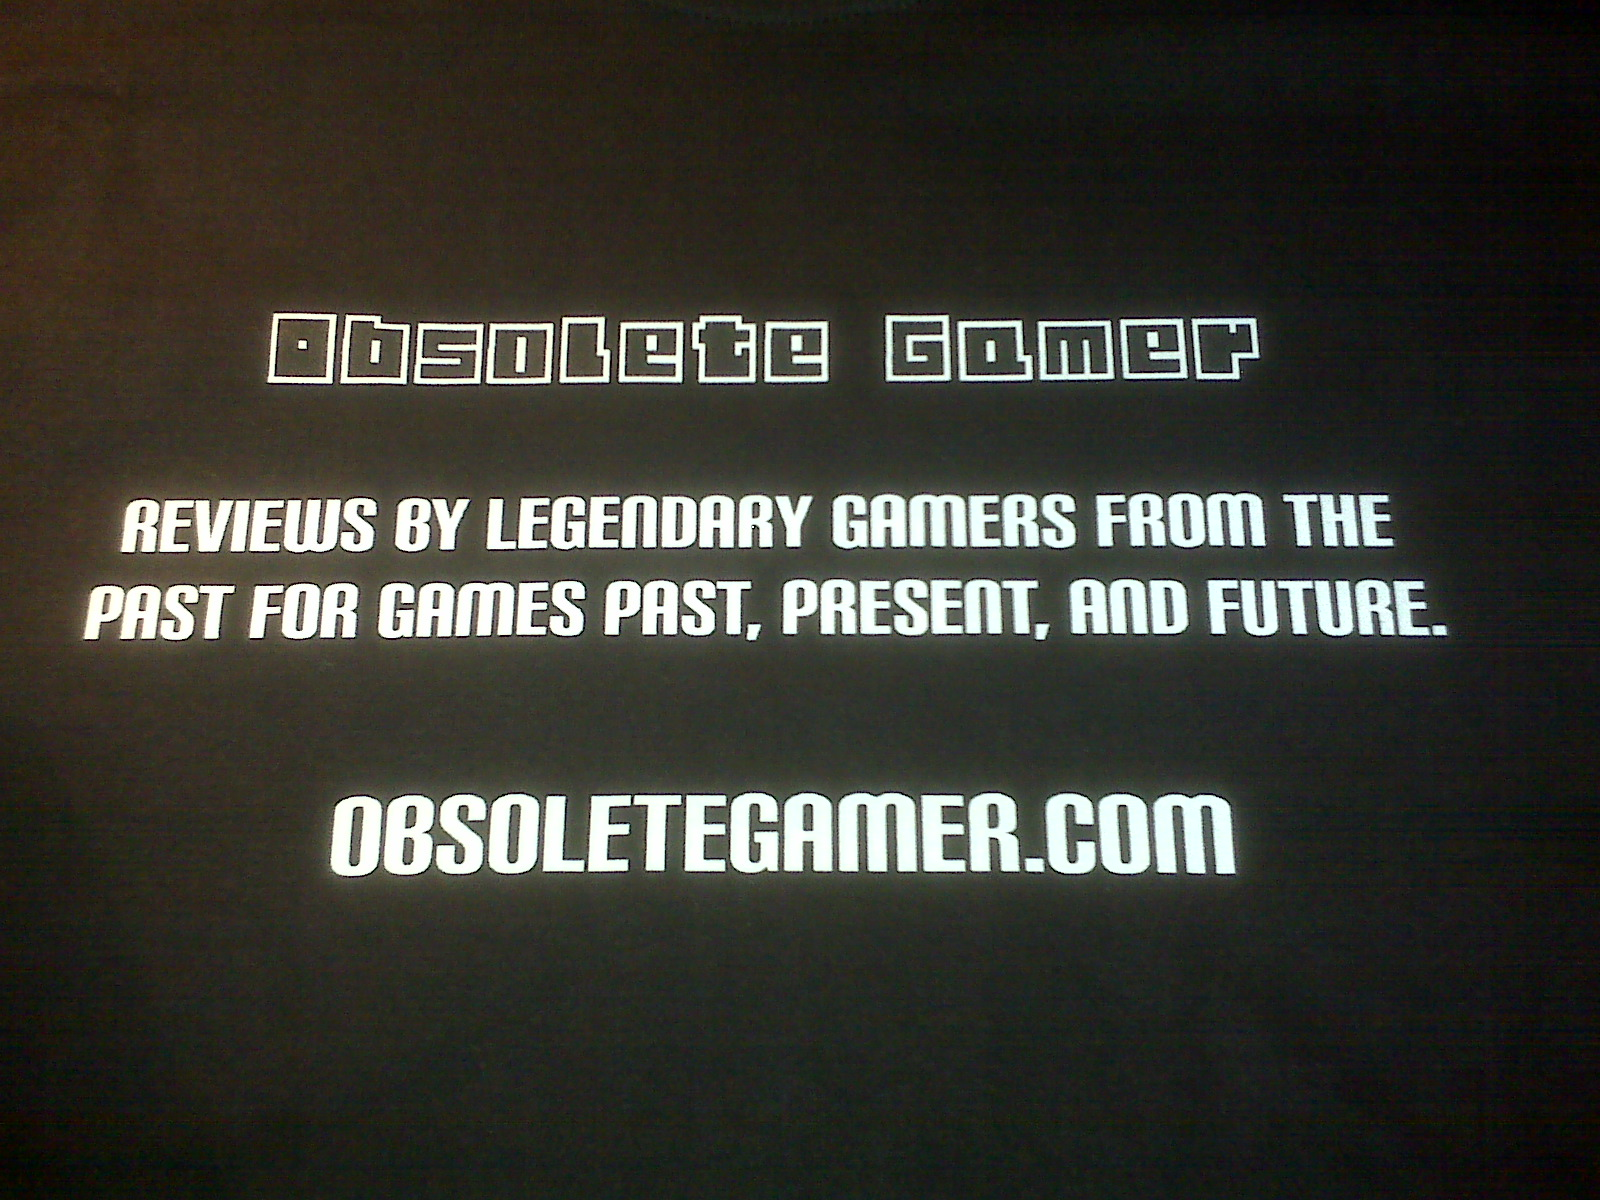 Obsolete Gamer T-Shirt Contest Ended